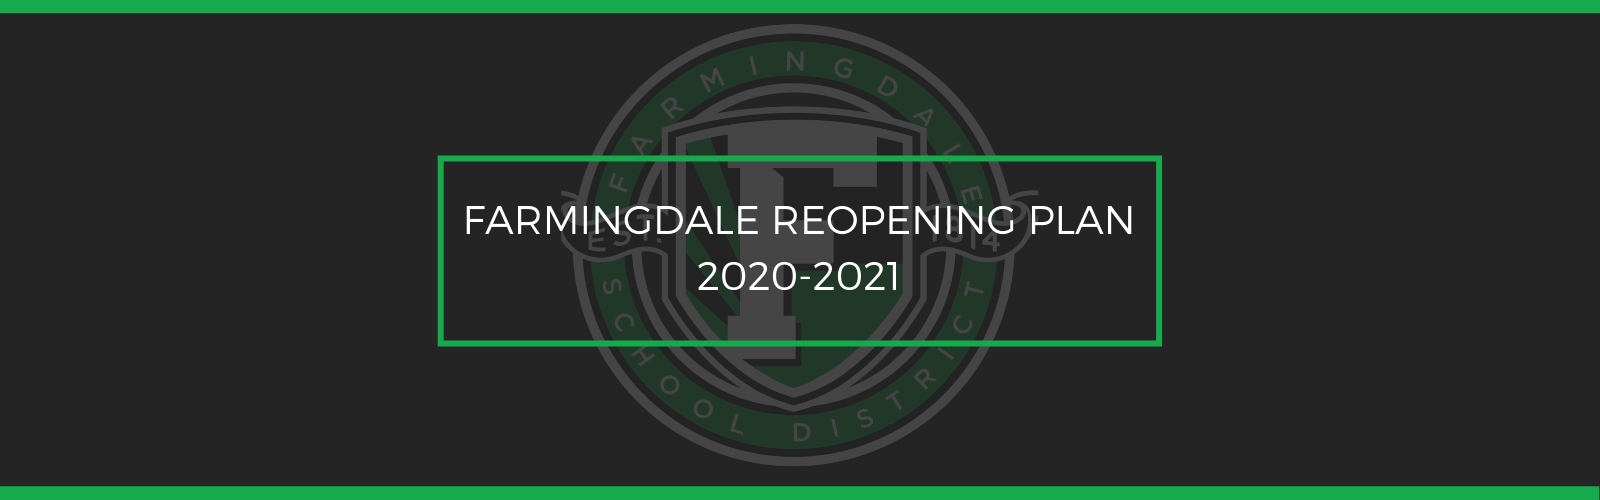 Farmingdale Reopening Plan 2020-2021